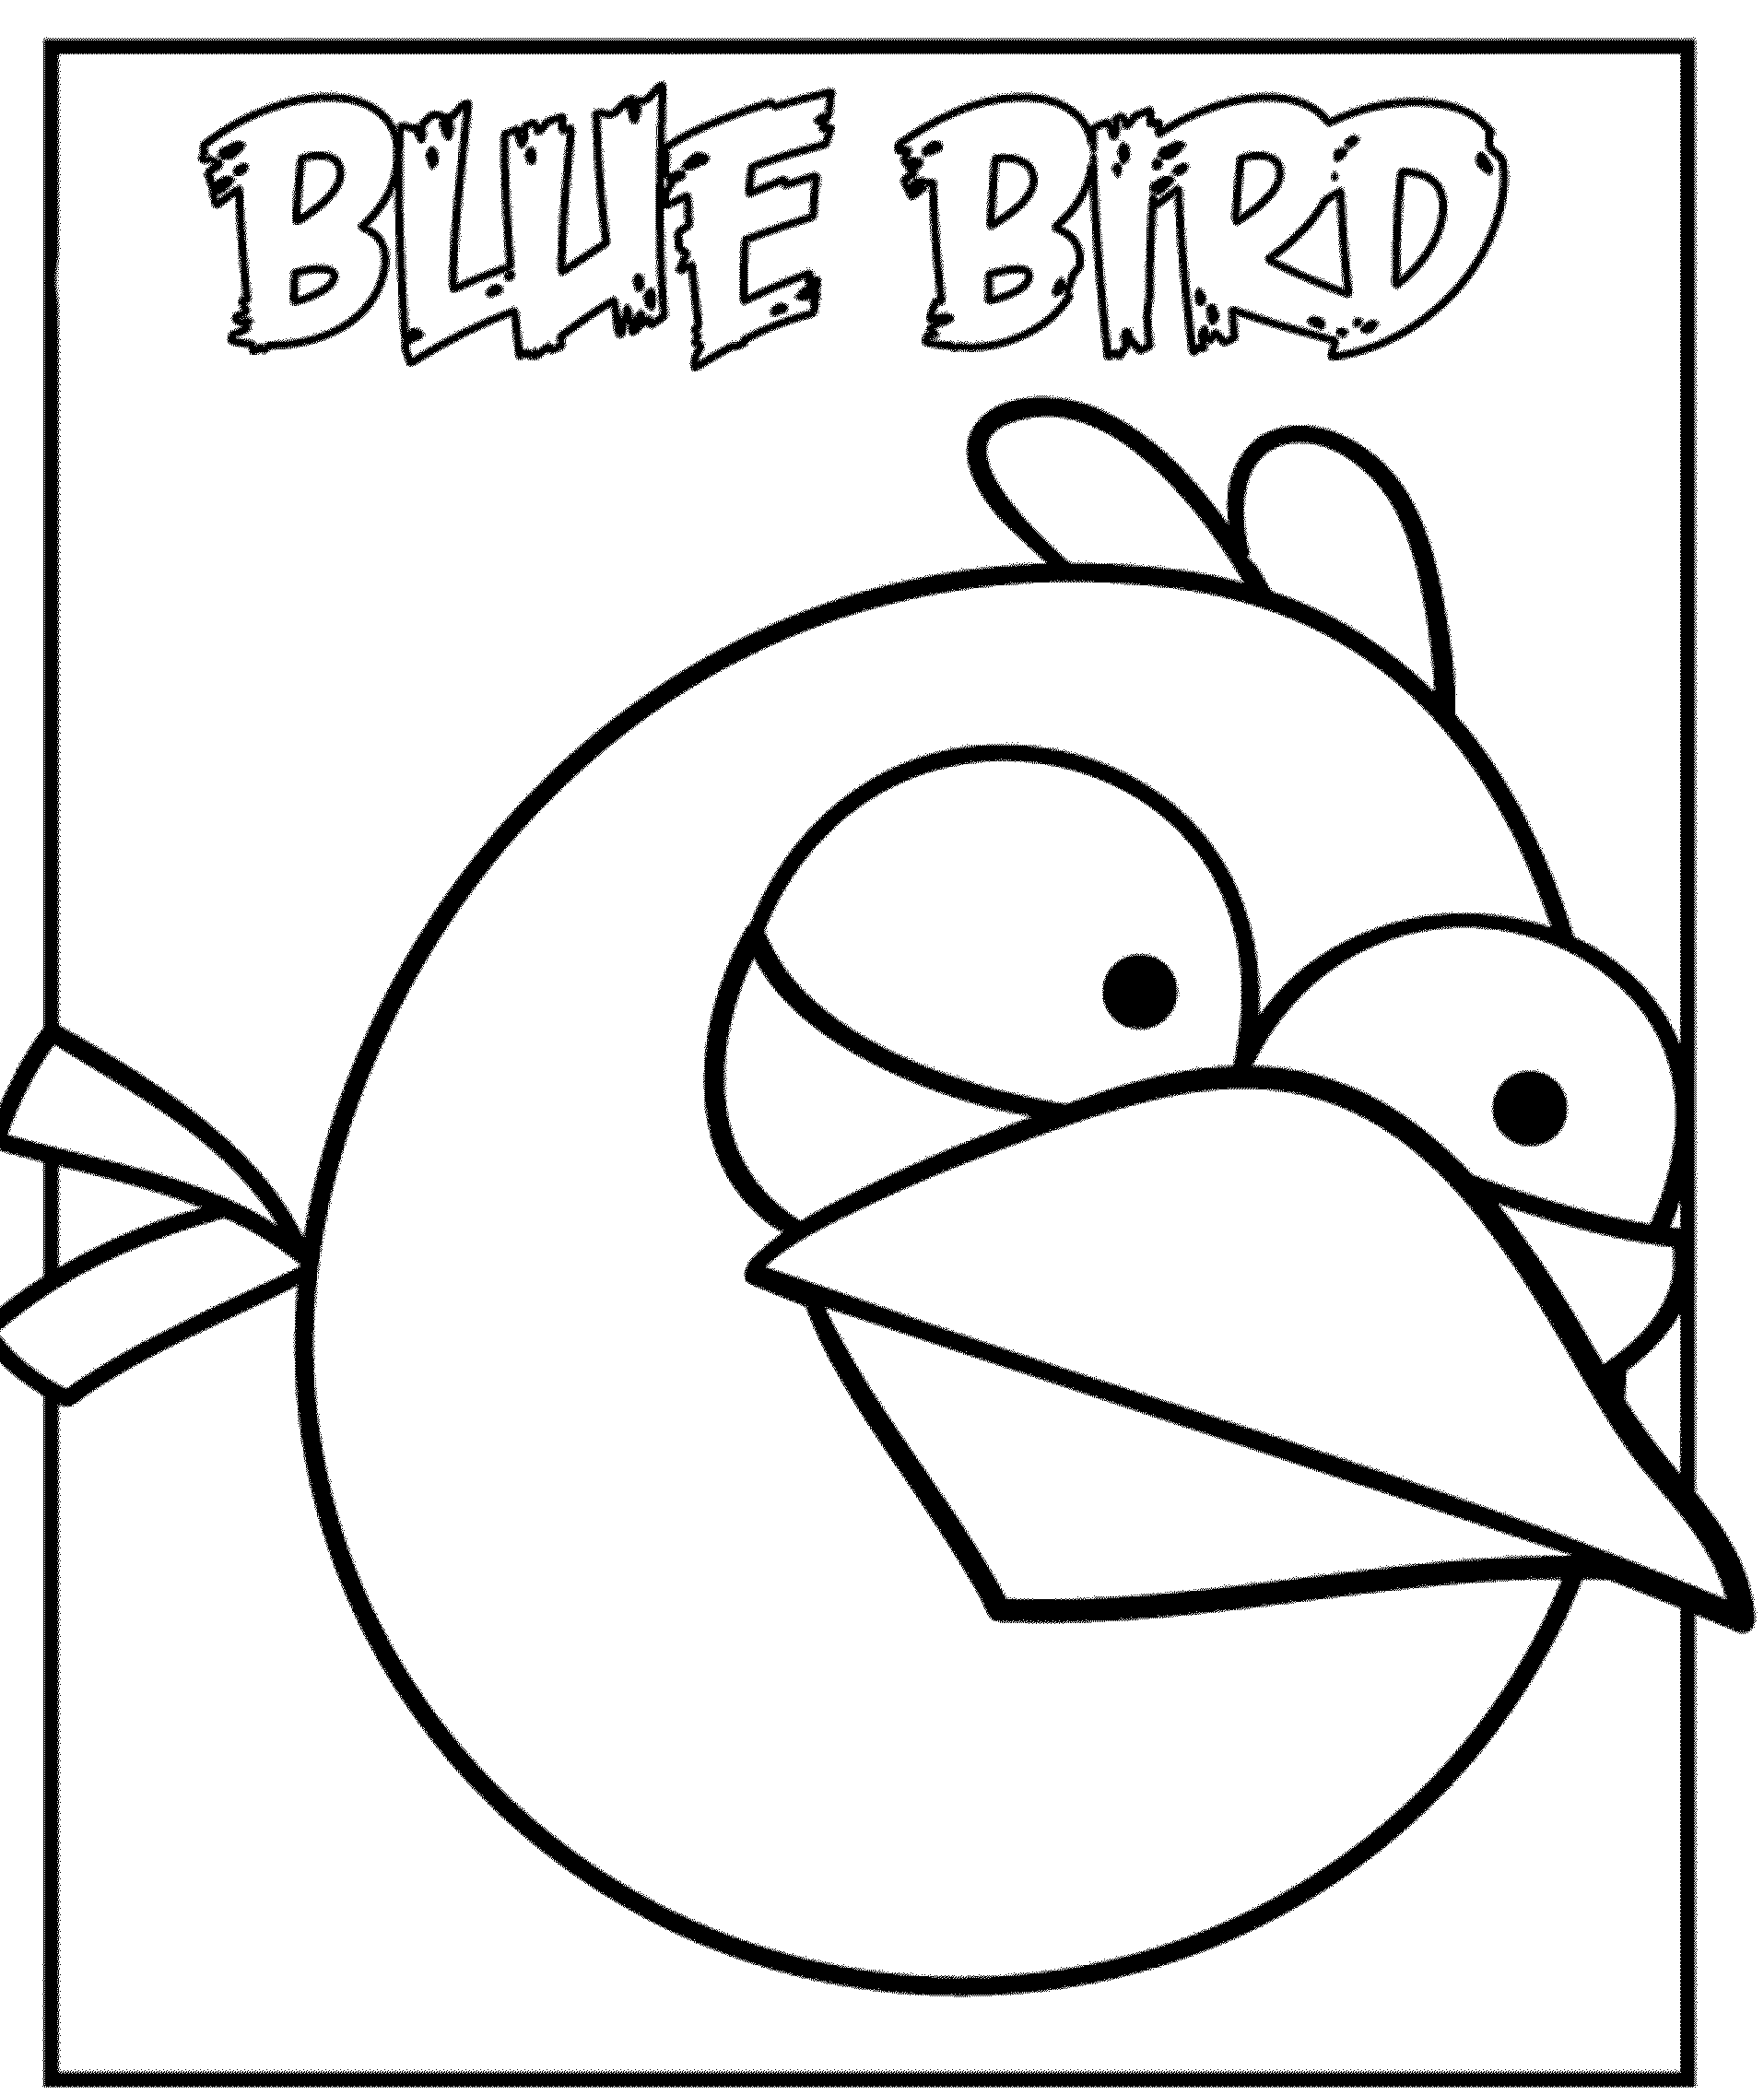 Angry birds coloring pages for your small kids for Blue angry bird coloring page